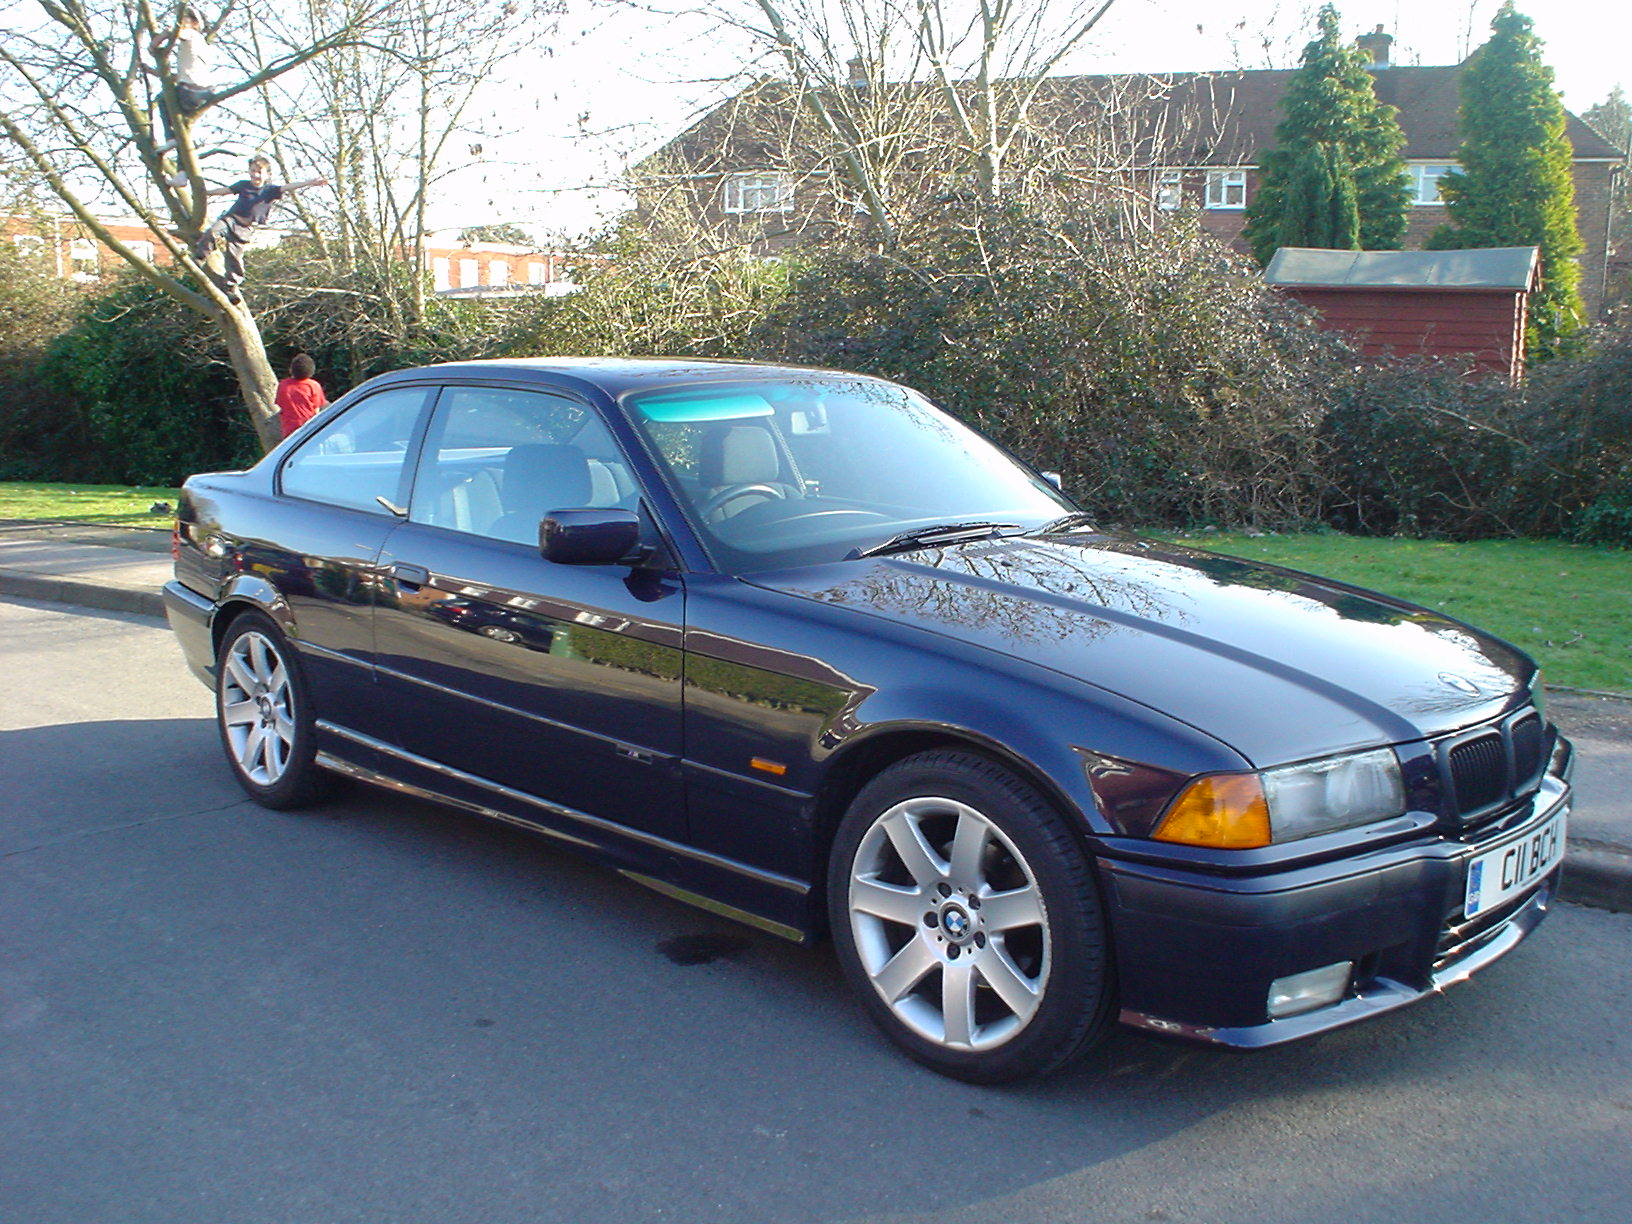 Bmw 318Is Sport Coupe, Immaculate. Specification / Details